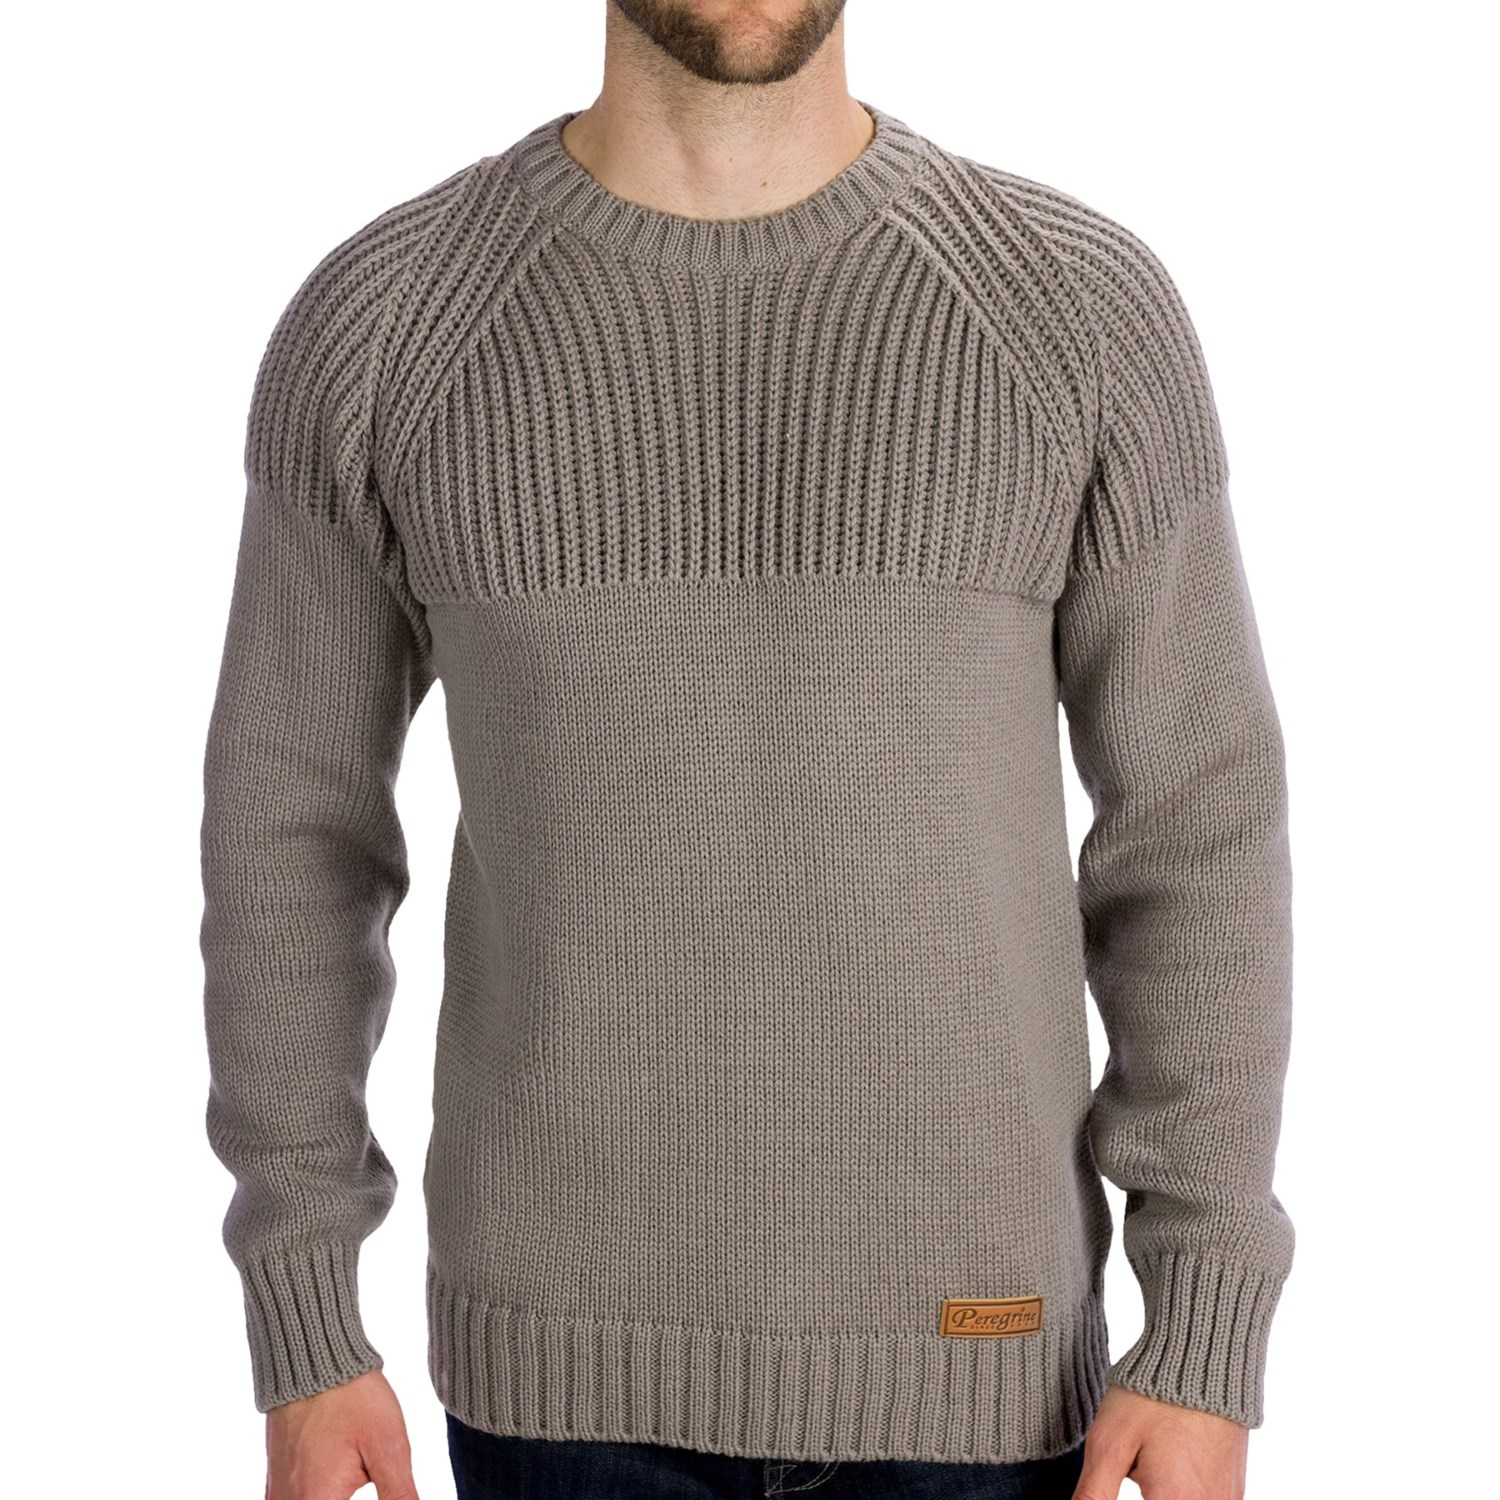 Mens Wool Sweaters. These days, wool has made its way into a variety of different types of r0nd.tk known for its anti-bacterial properties and ability to help maintain warmth even when wet, a large number of fashion designers have embraced this natural fiber in their clothing lines.